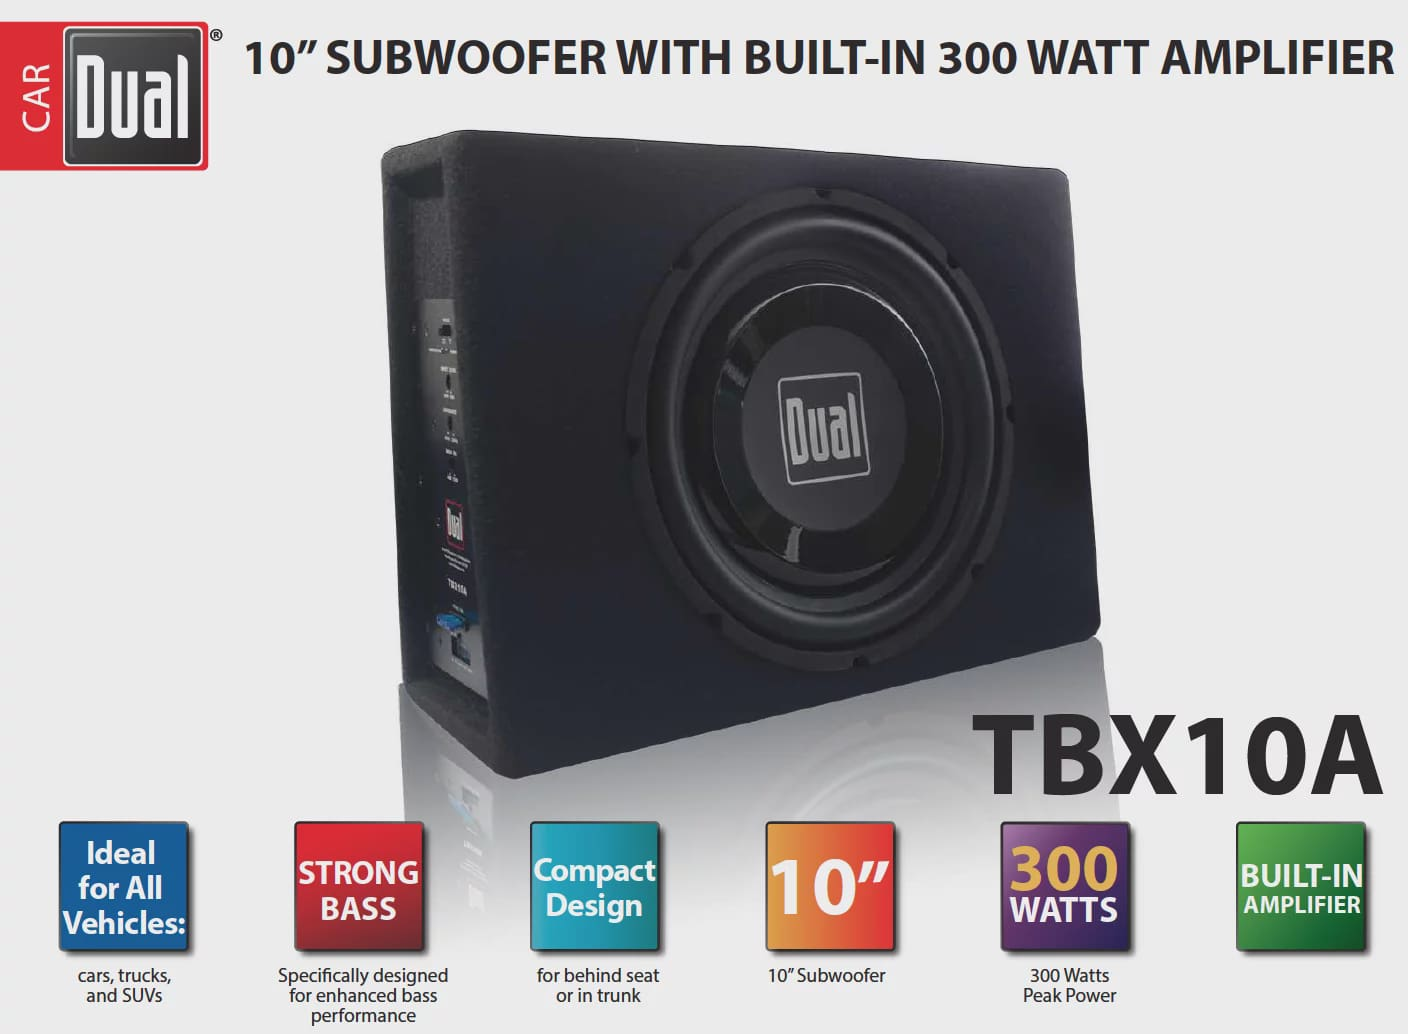 Dual Electronics Tbx10a 10 Inch Shallow High Performance Powered Watt Power Amplifier Enclosed Subwoofer With Built In 300 Watts Of Peak